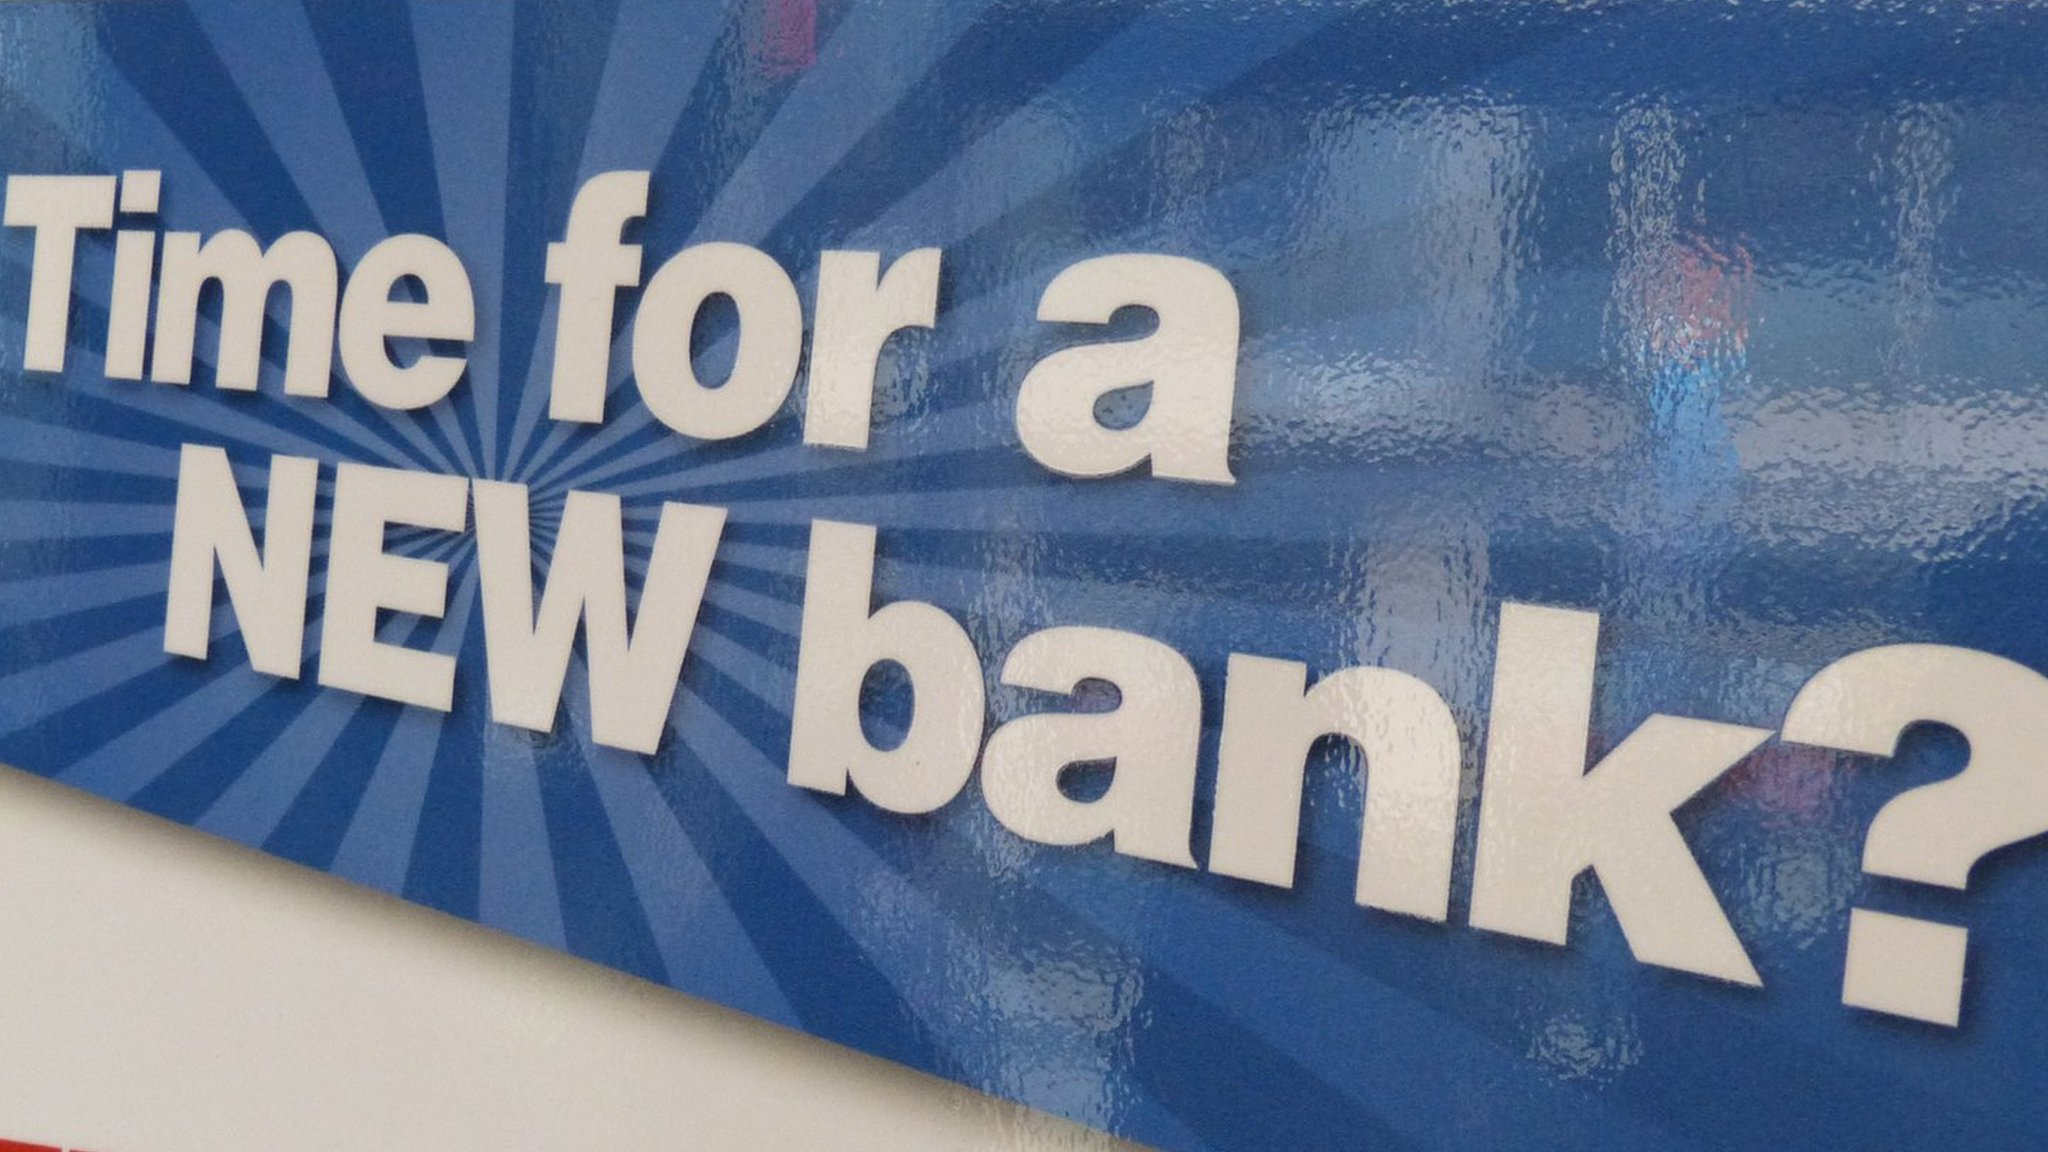 Plans to compare bank customer service